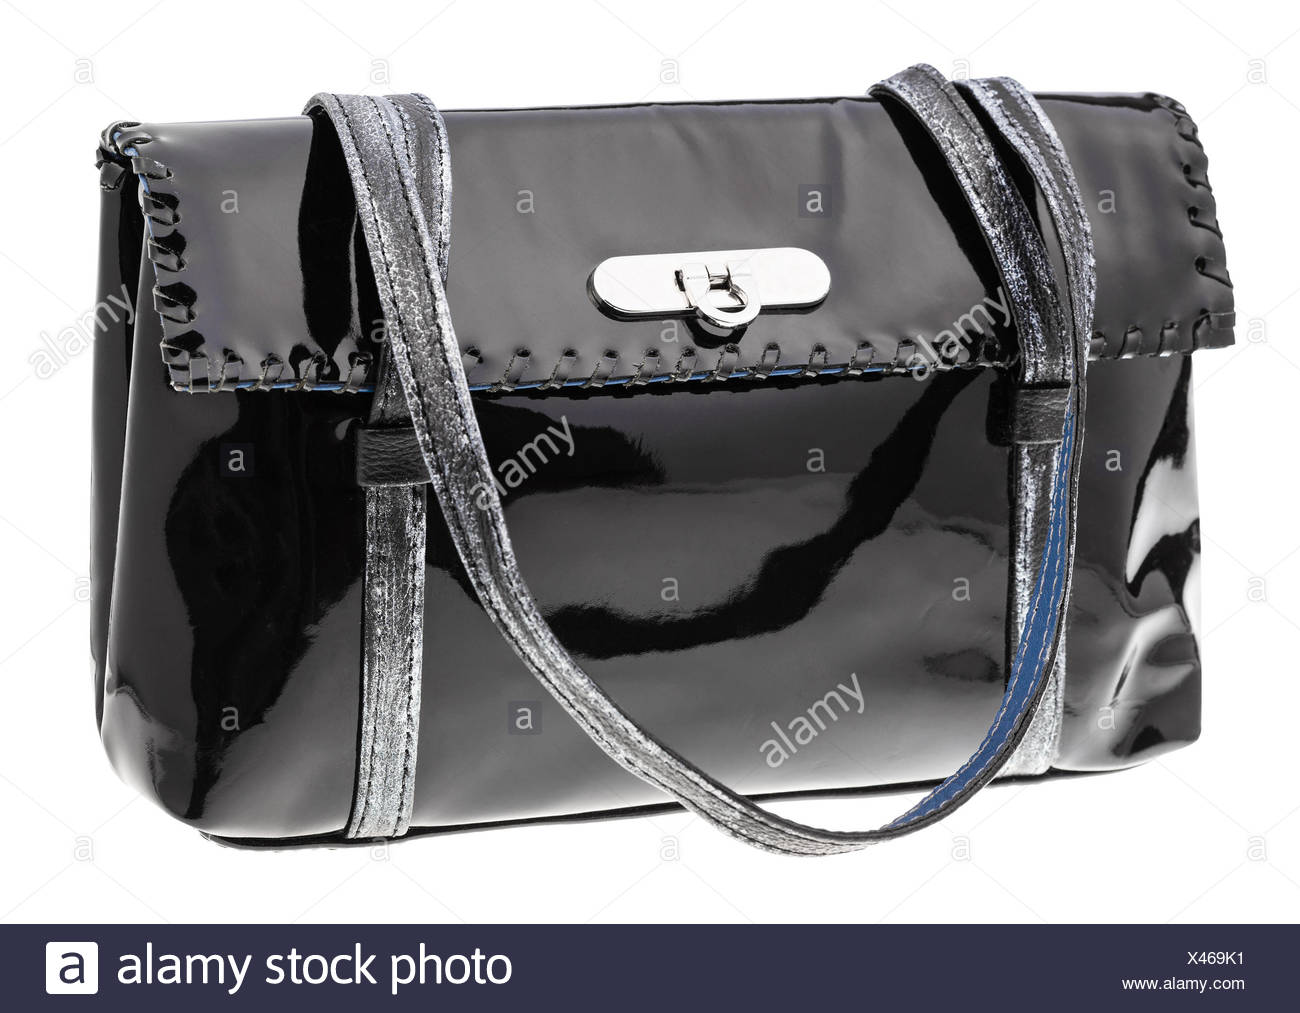 fb22b6b321b0 Black Patent Leather Handbag Stock Photos   Black Patent Leather ...